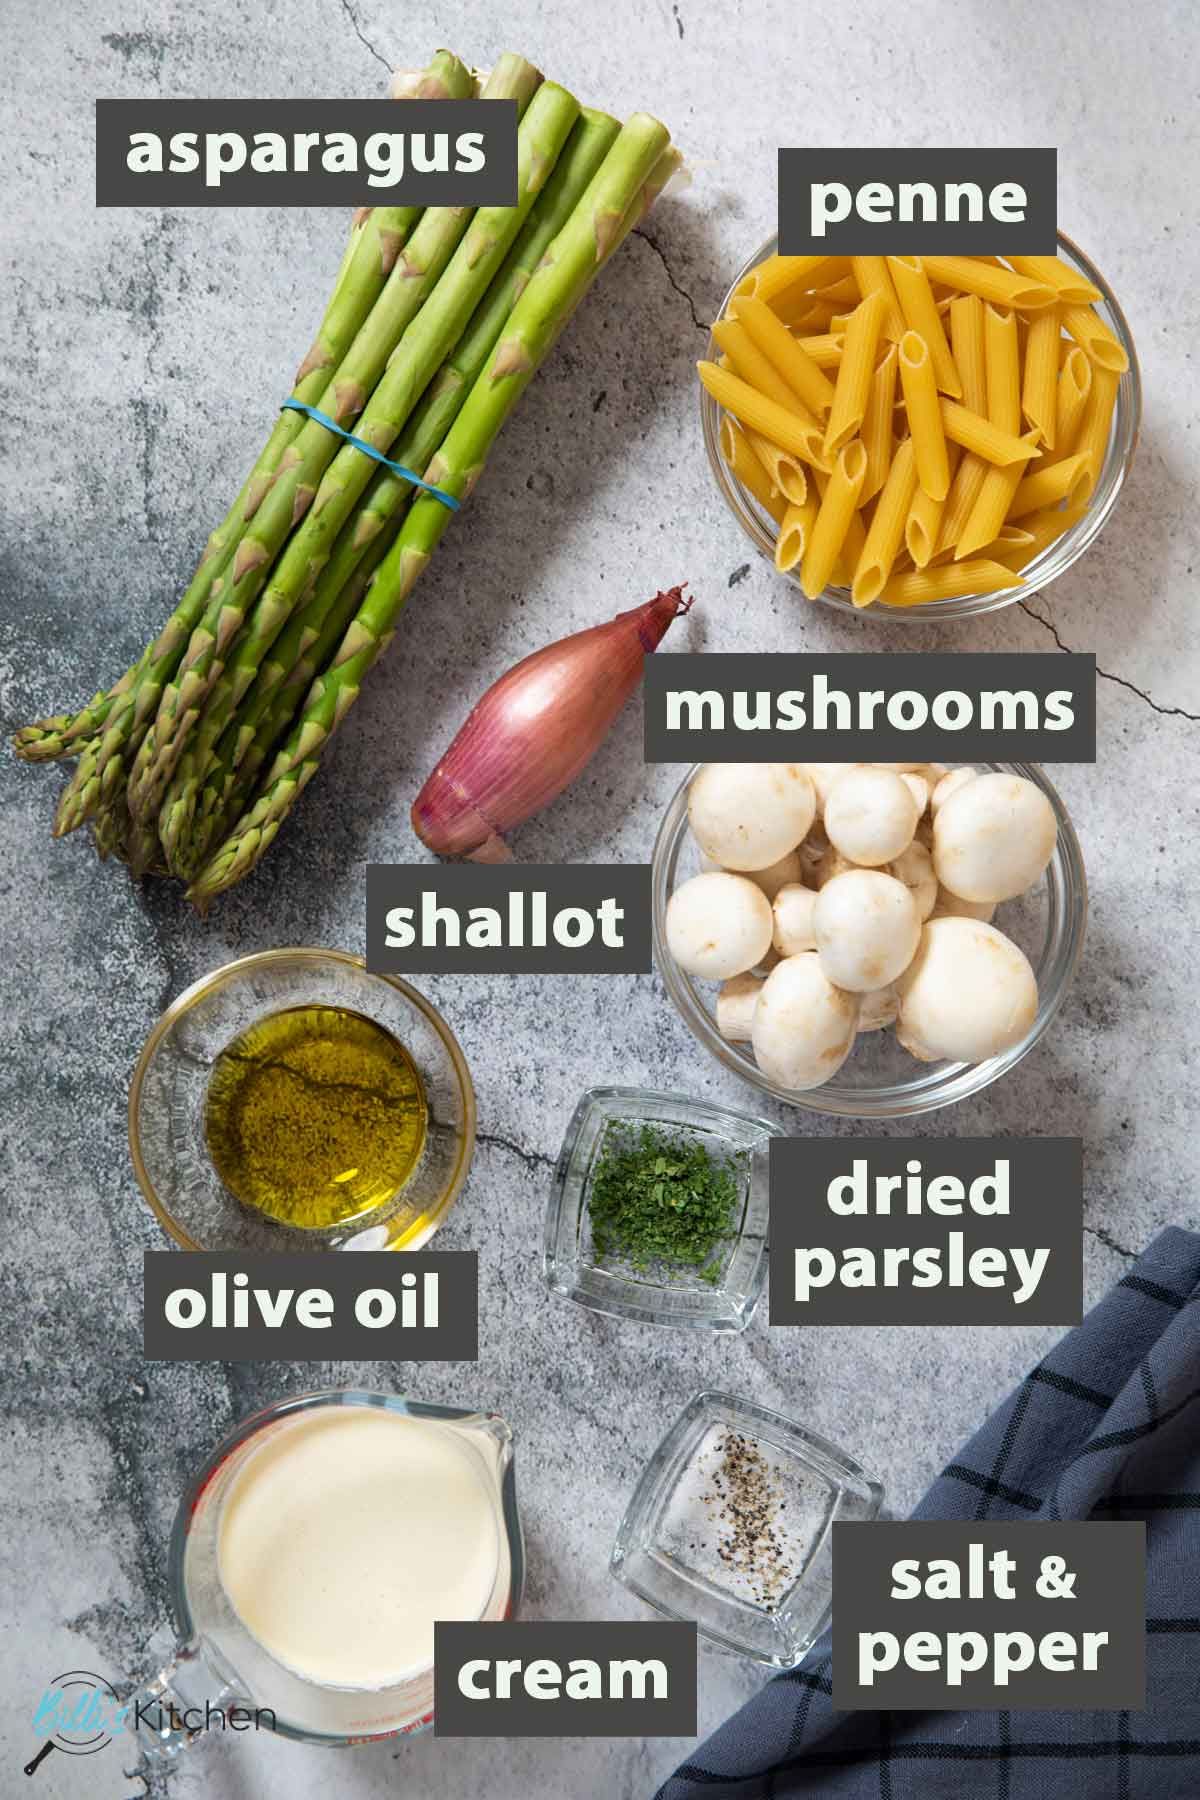 An image showing all the ingredients you need to prepare mushroom asparagus pasta.